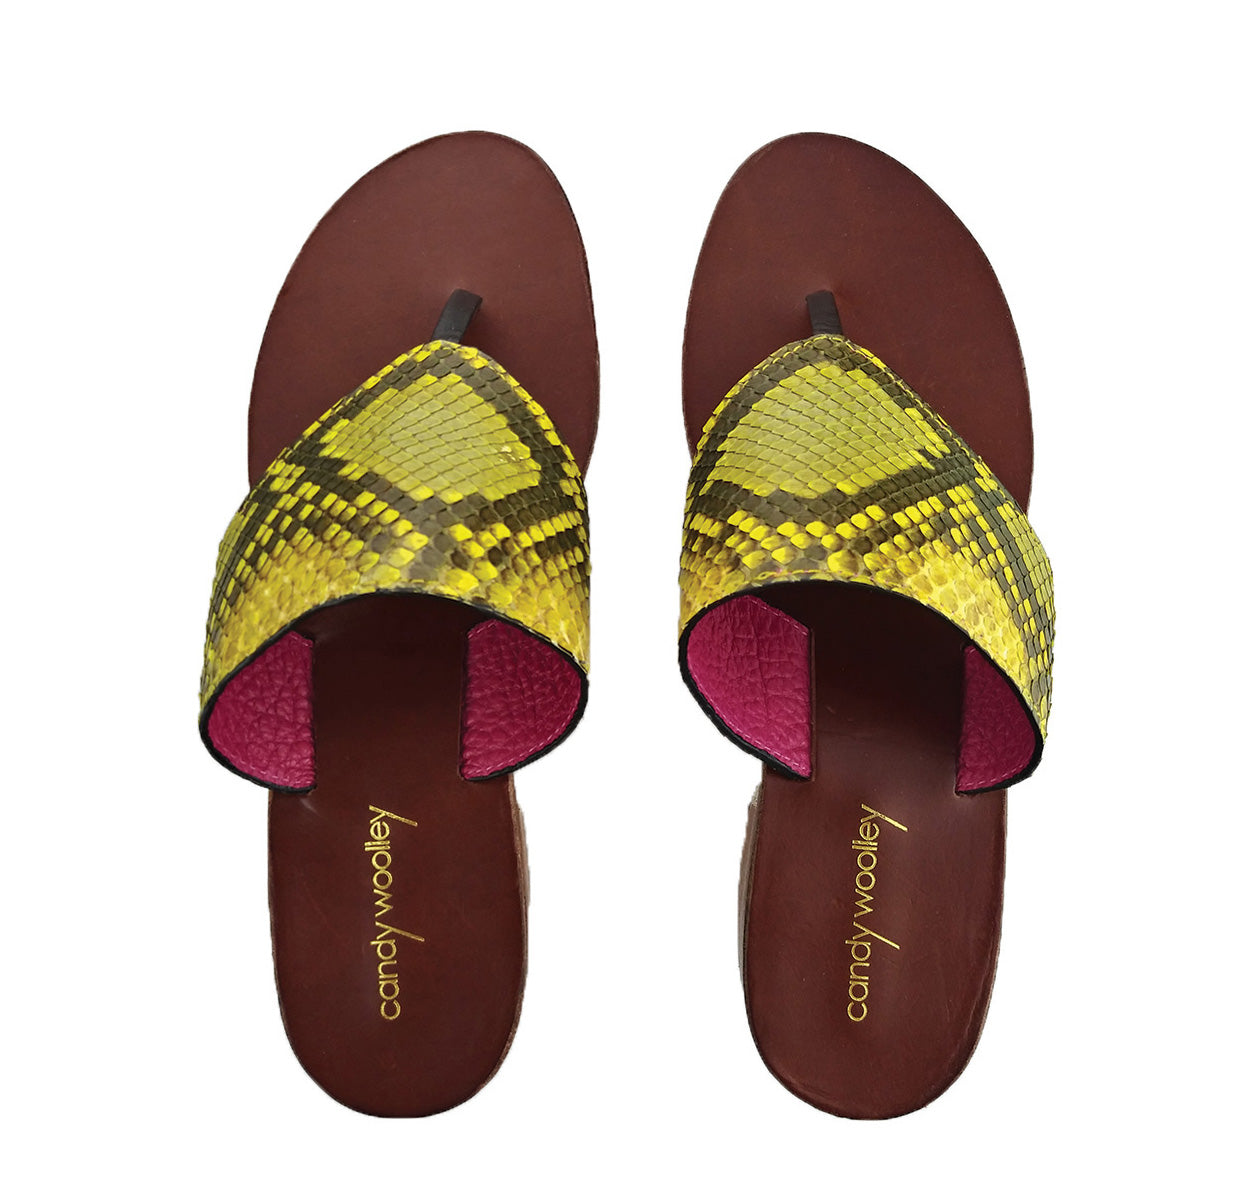 Genuine Python Yellow & Taupe Flat Thong Sandals. Size Available 9